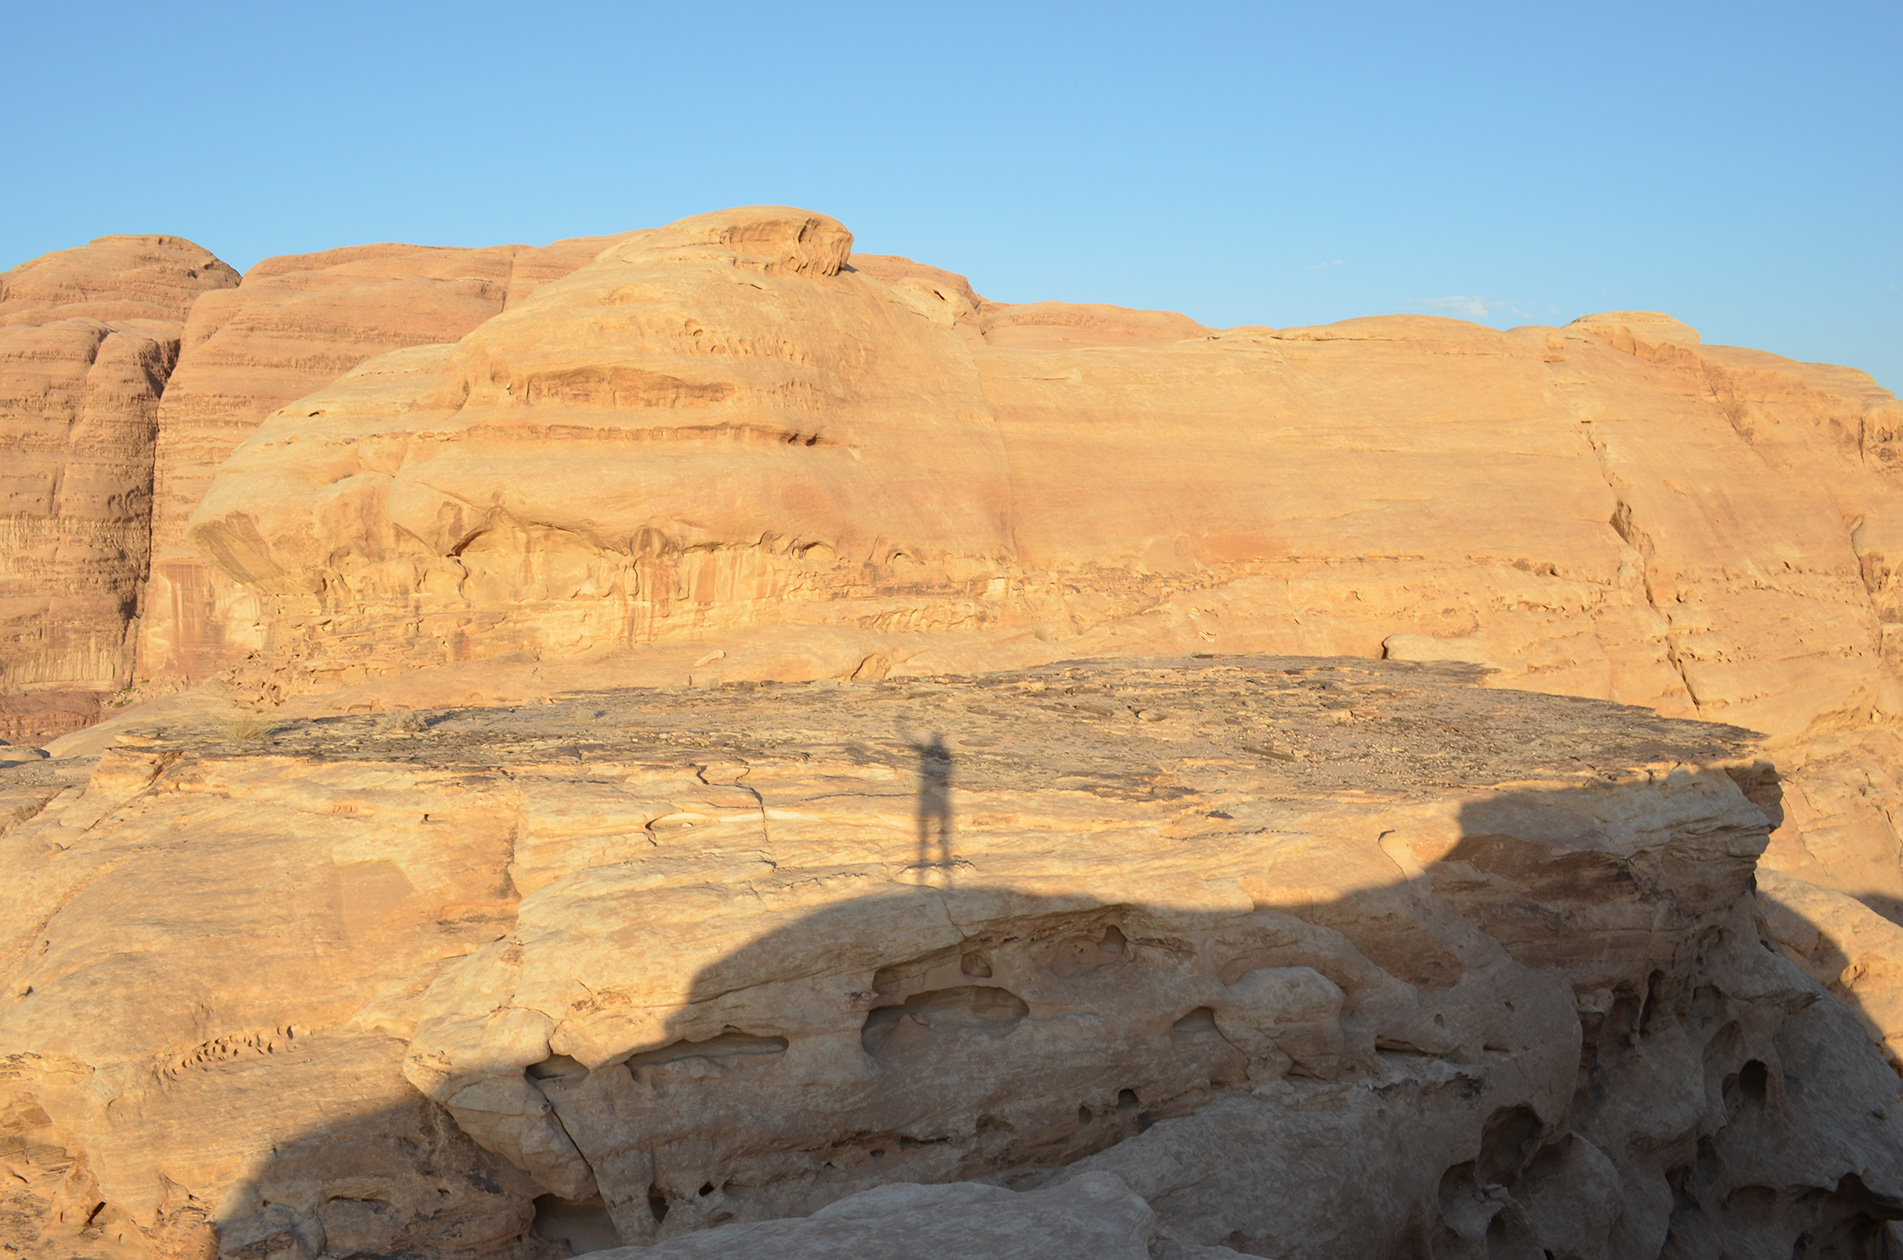 Eco-tourism in Wadi Rum